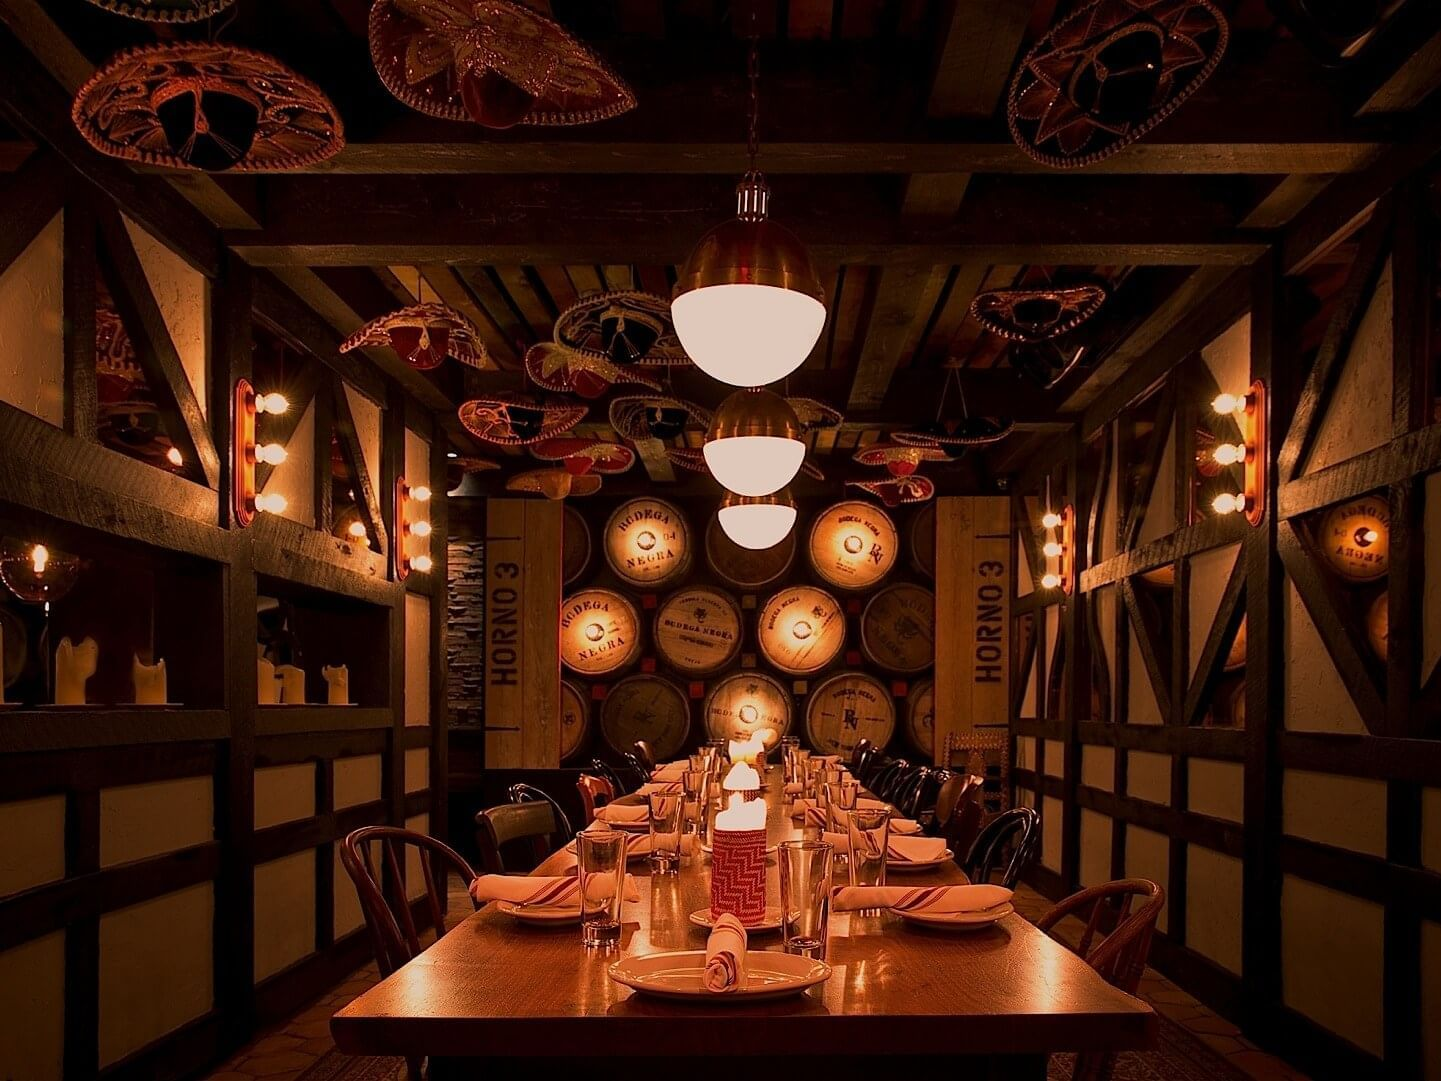 Dining area in Bodega Negra restaurant at Dream Downtown NYC